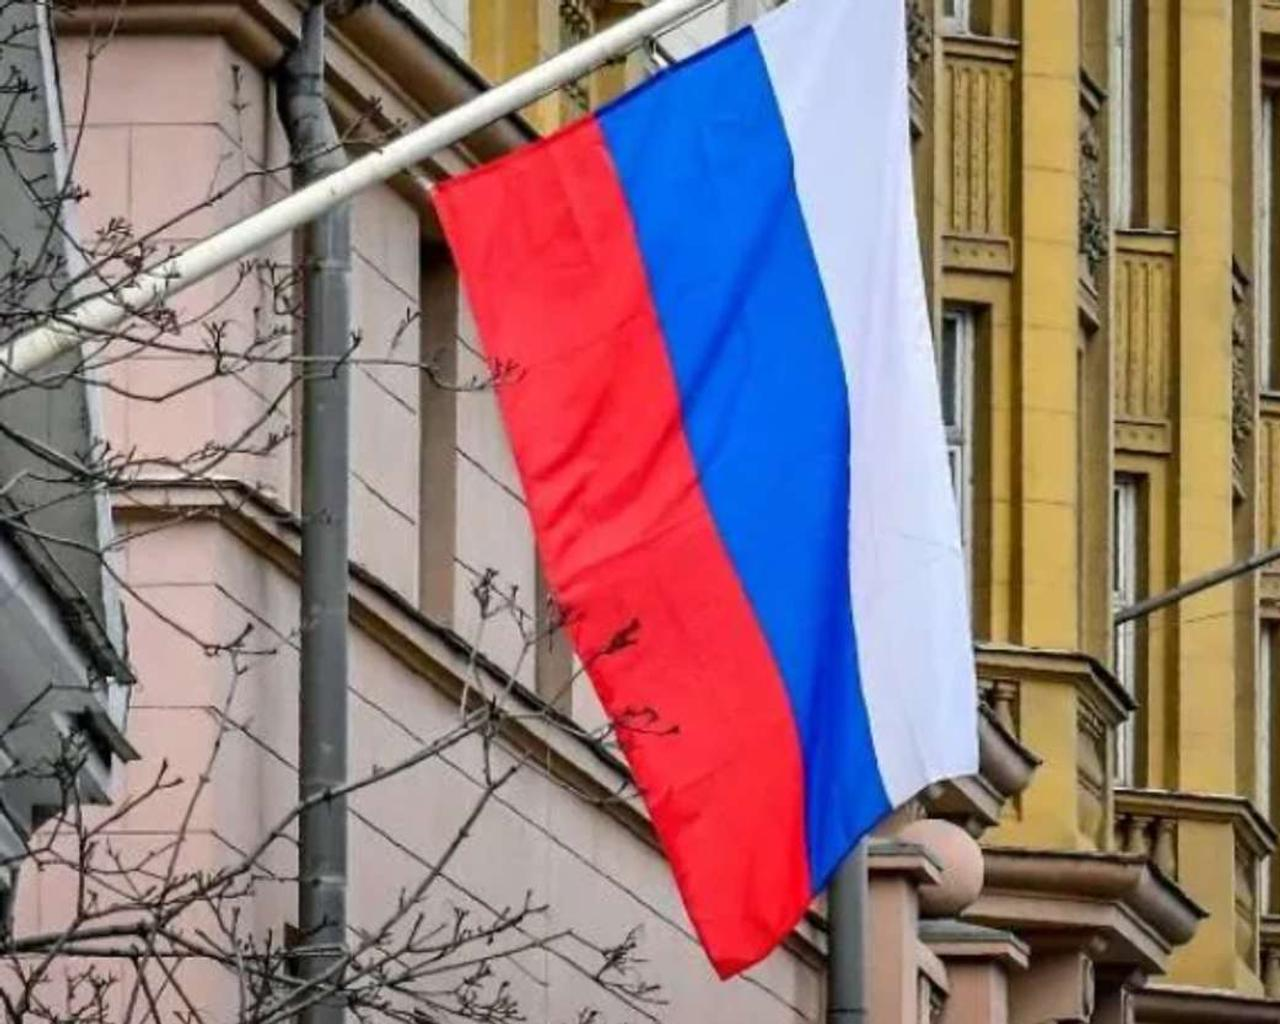 Russia called its ambassador in Washington for consultations and promised to respond to the new US sanctions.